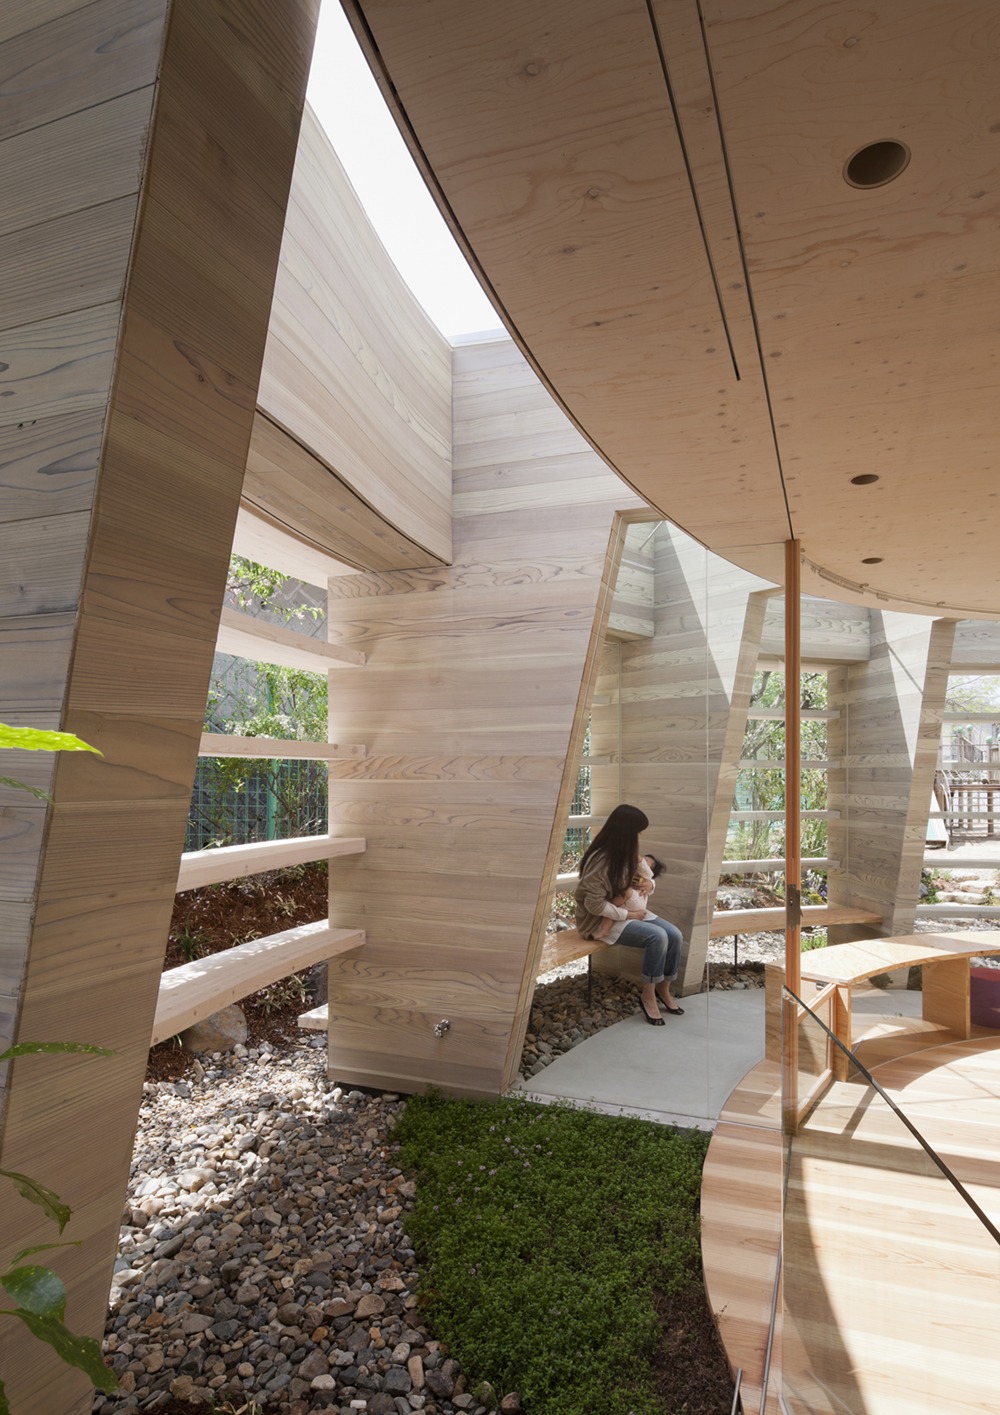 the-tree-mag-peanuts-by-uid-architects-40.jpg